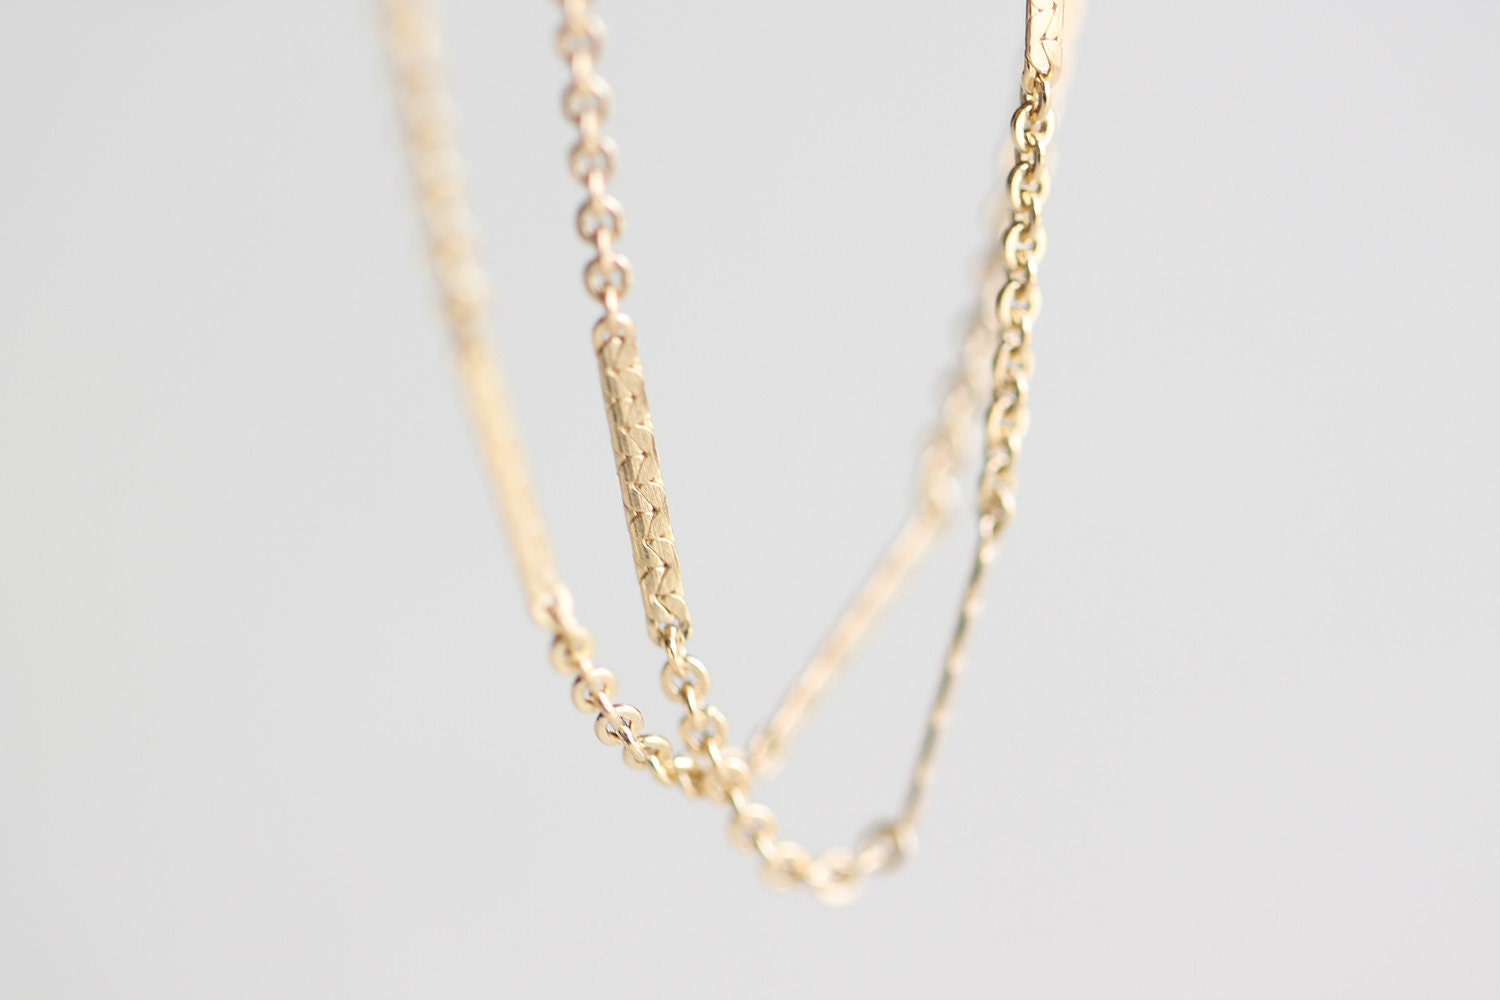 Shimmering Gold Bar Chain Thin Simple 14k Gold Fill